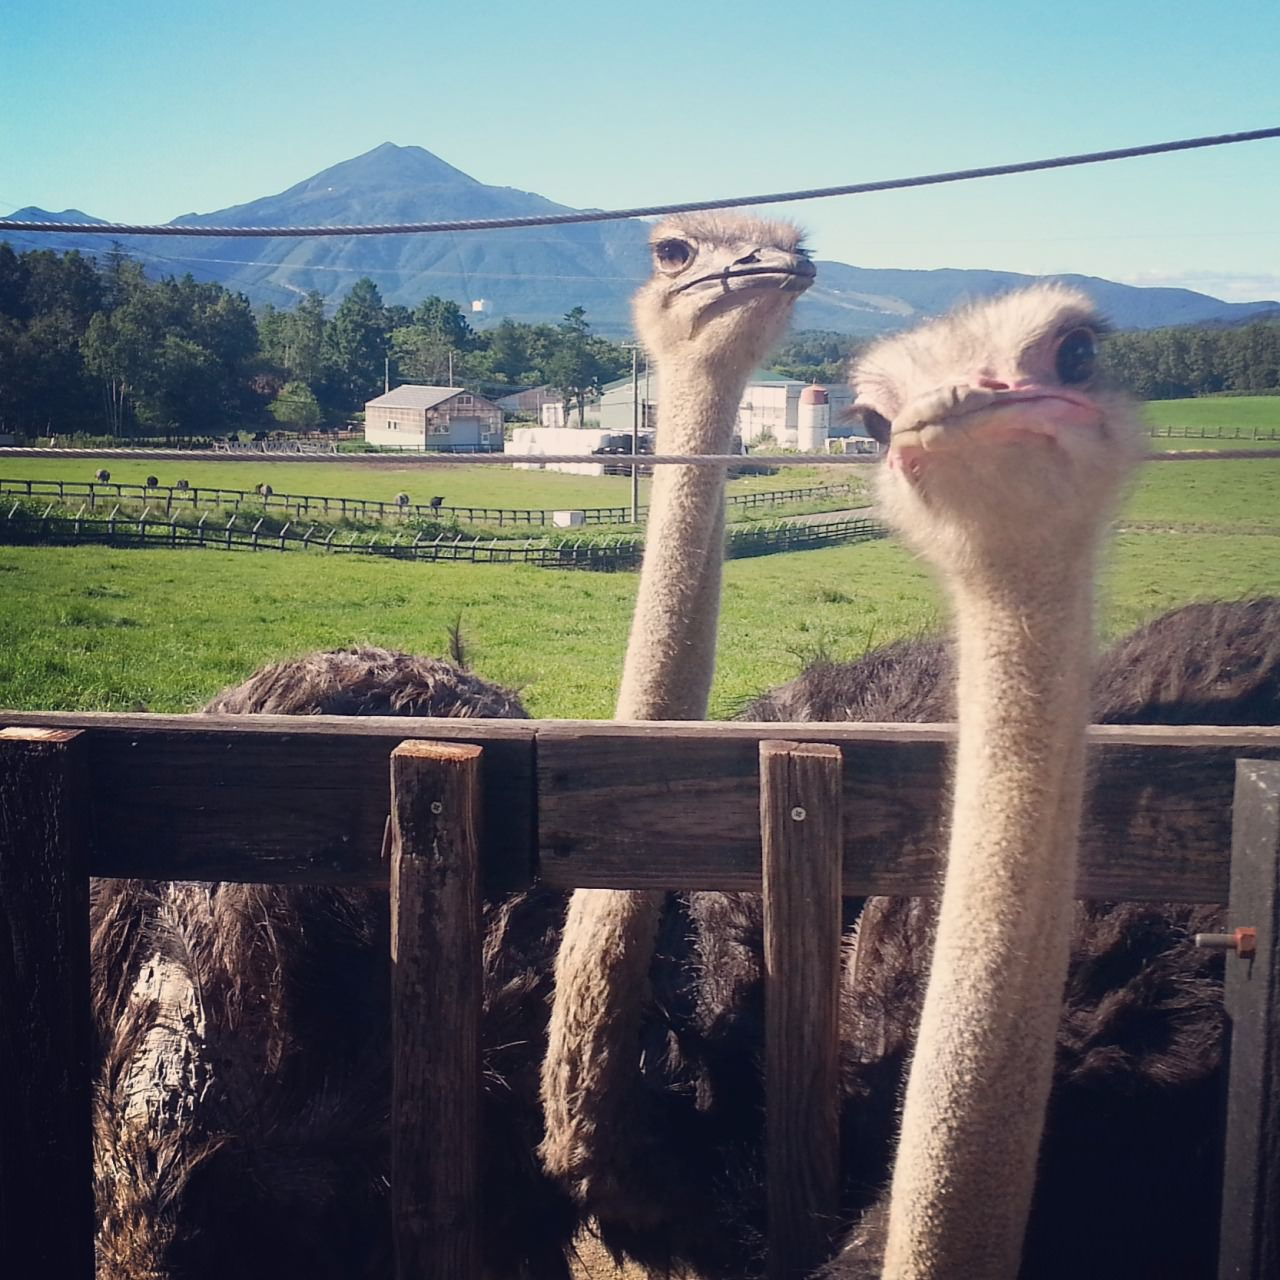 The ostriches run wild at the fields with the  amazing mountains backdrop